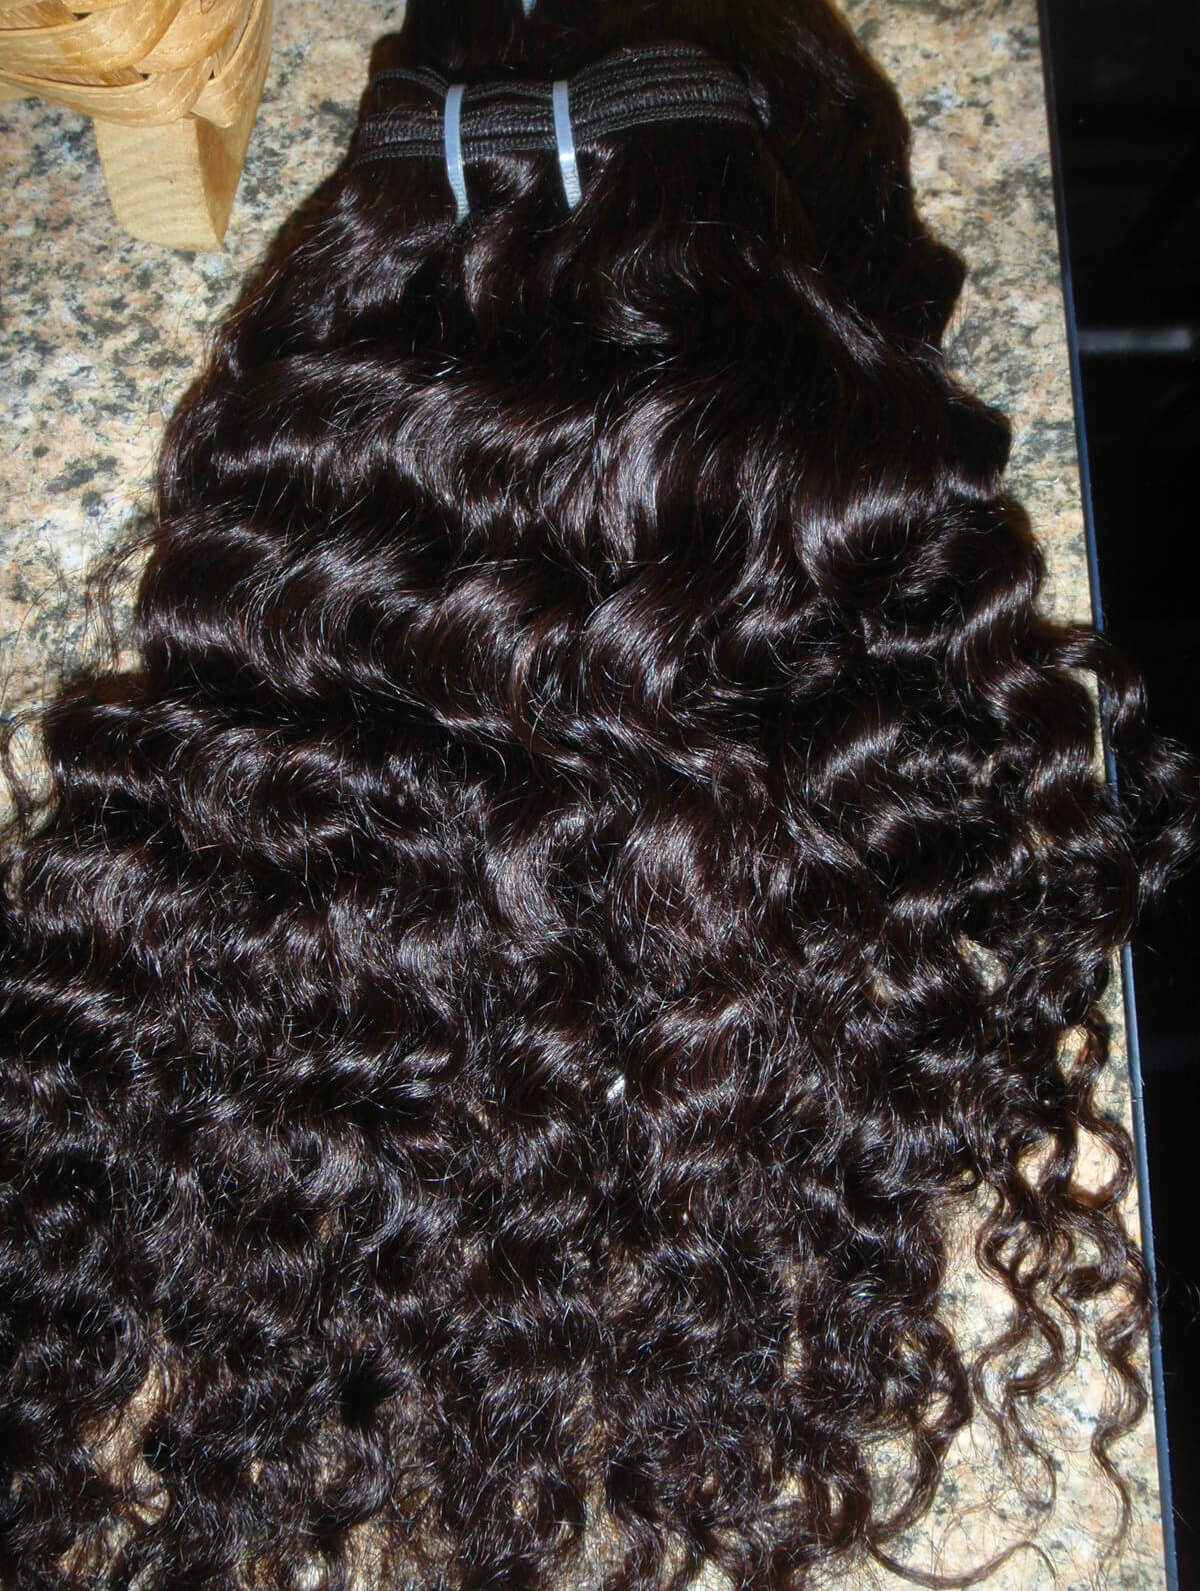 Loose Curly Hair From The Back